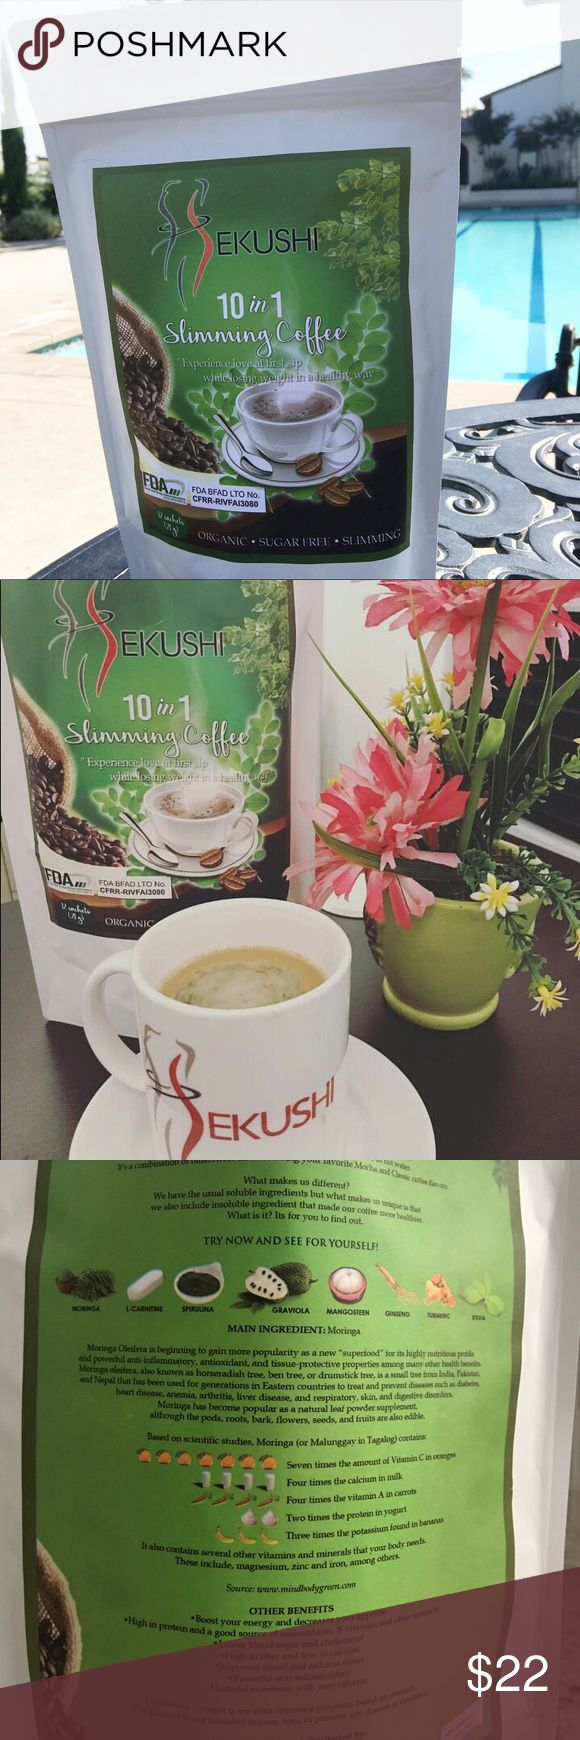 Japanese product Sekushi Slimming Coffee 10 in 1 slimming coffee! Organic sugarfree slimming / 12 sachets Other